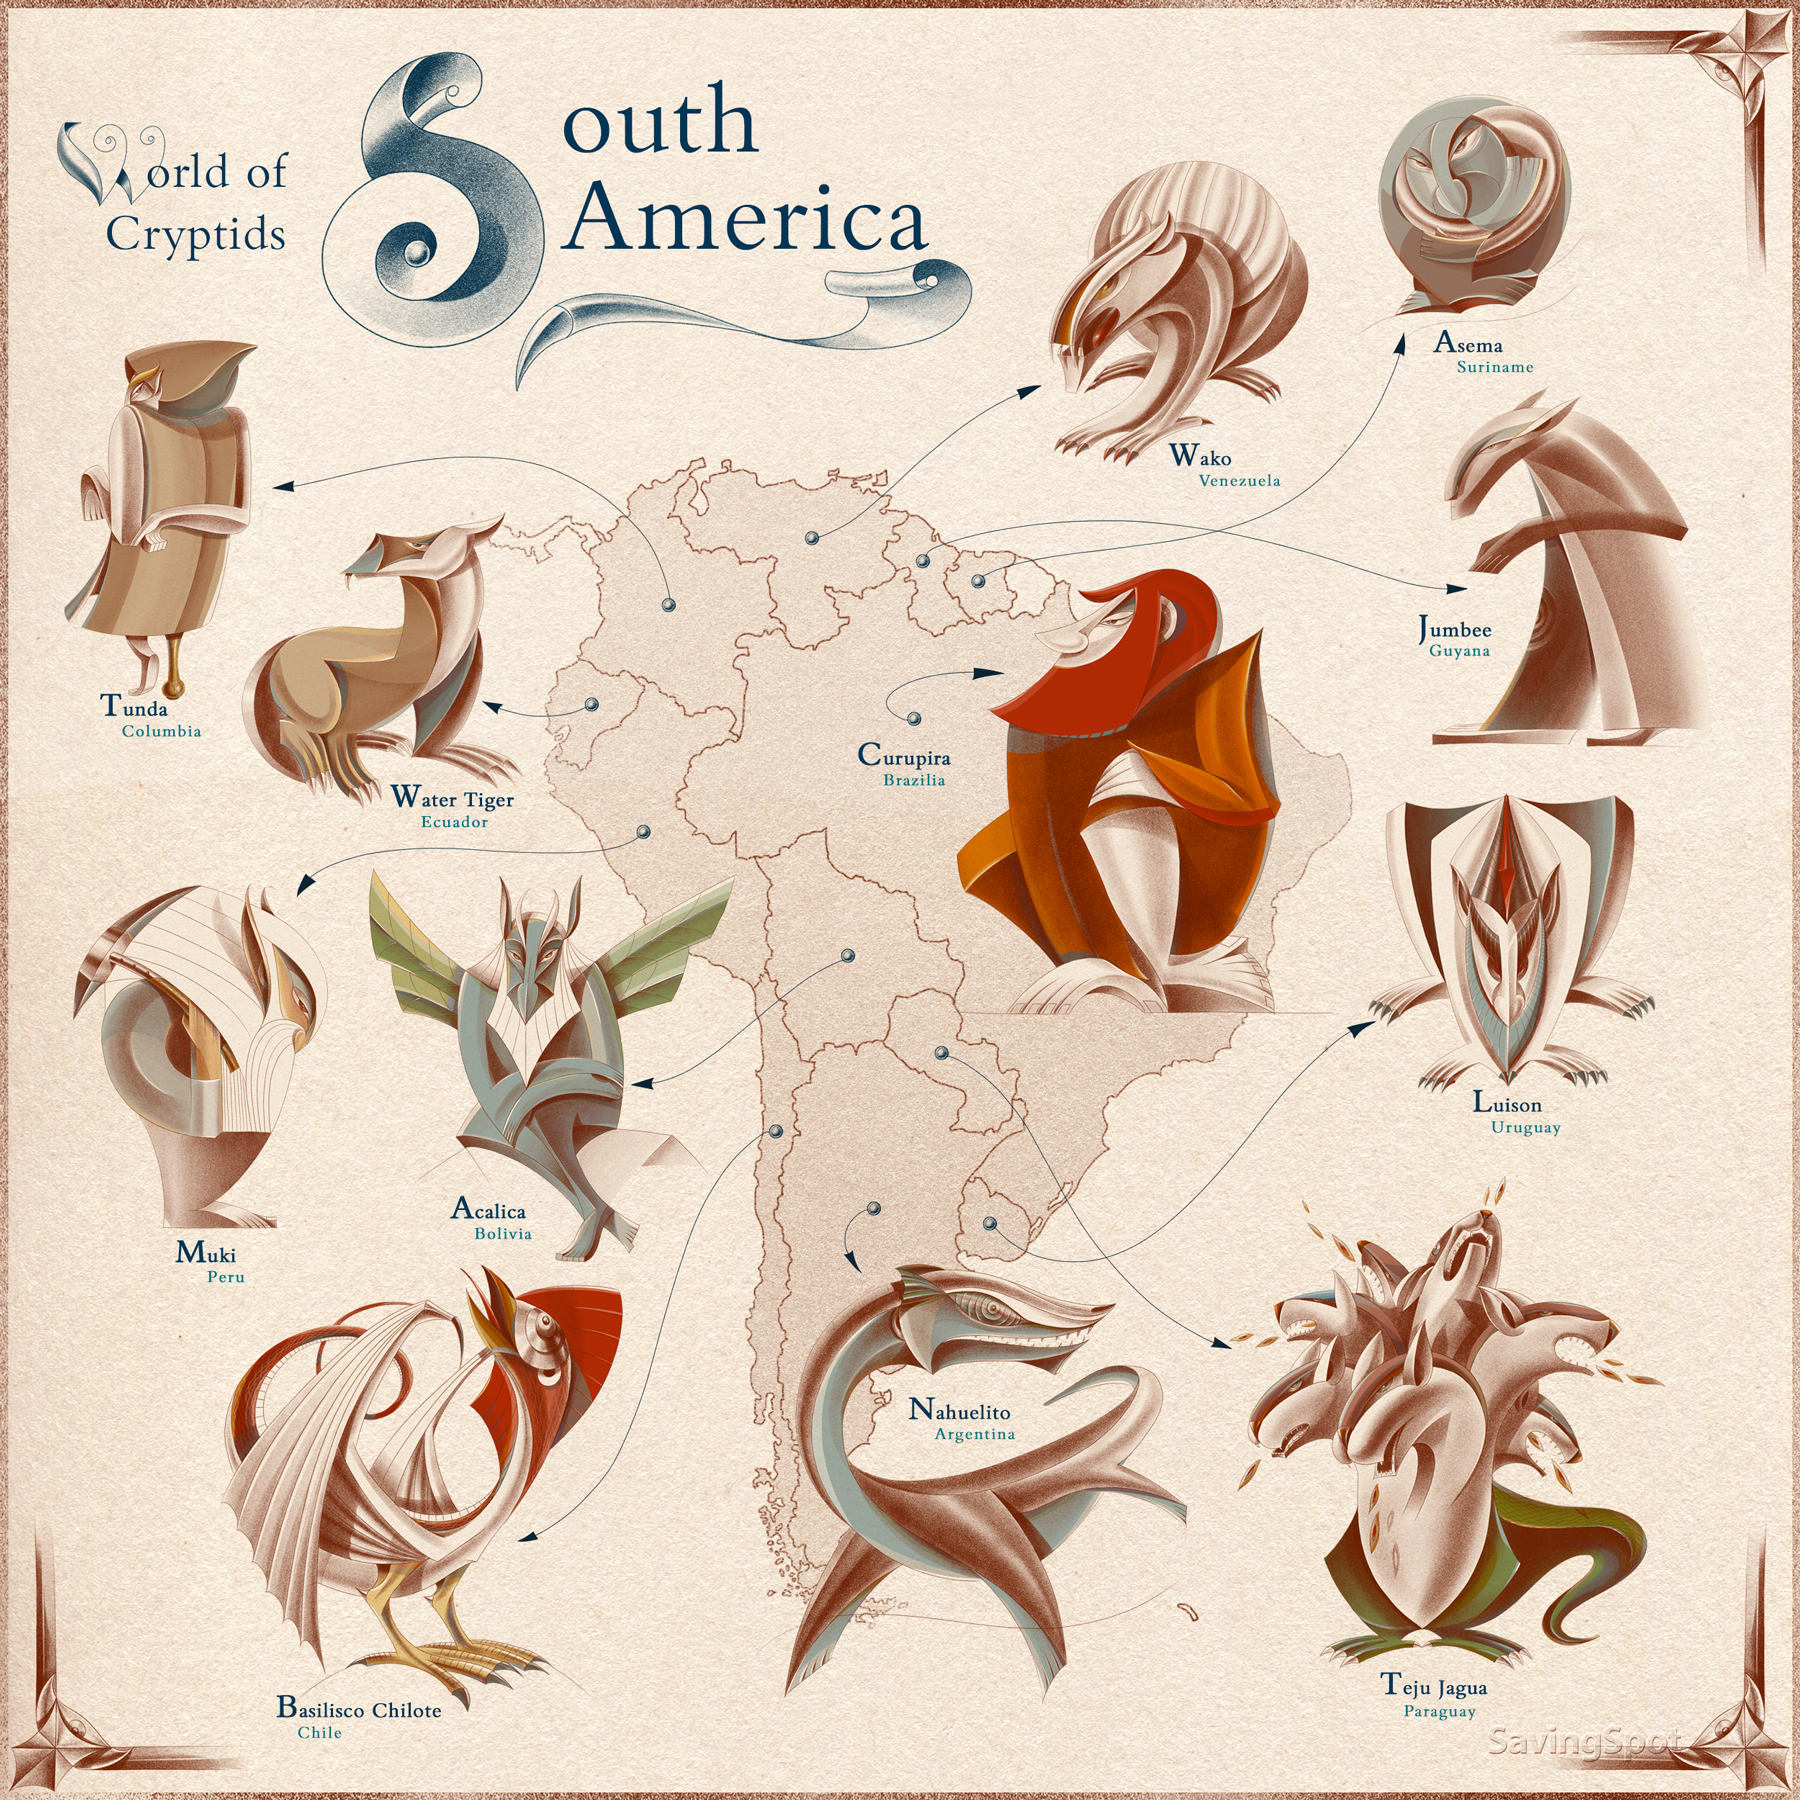 Illustrated map of mythical creatures in South America